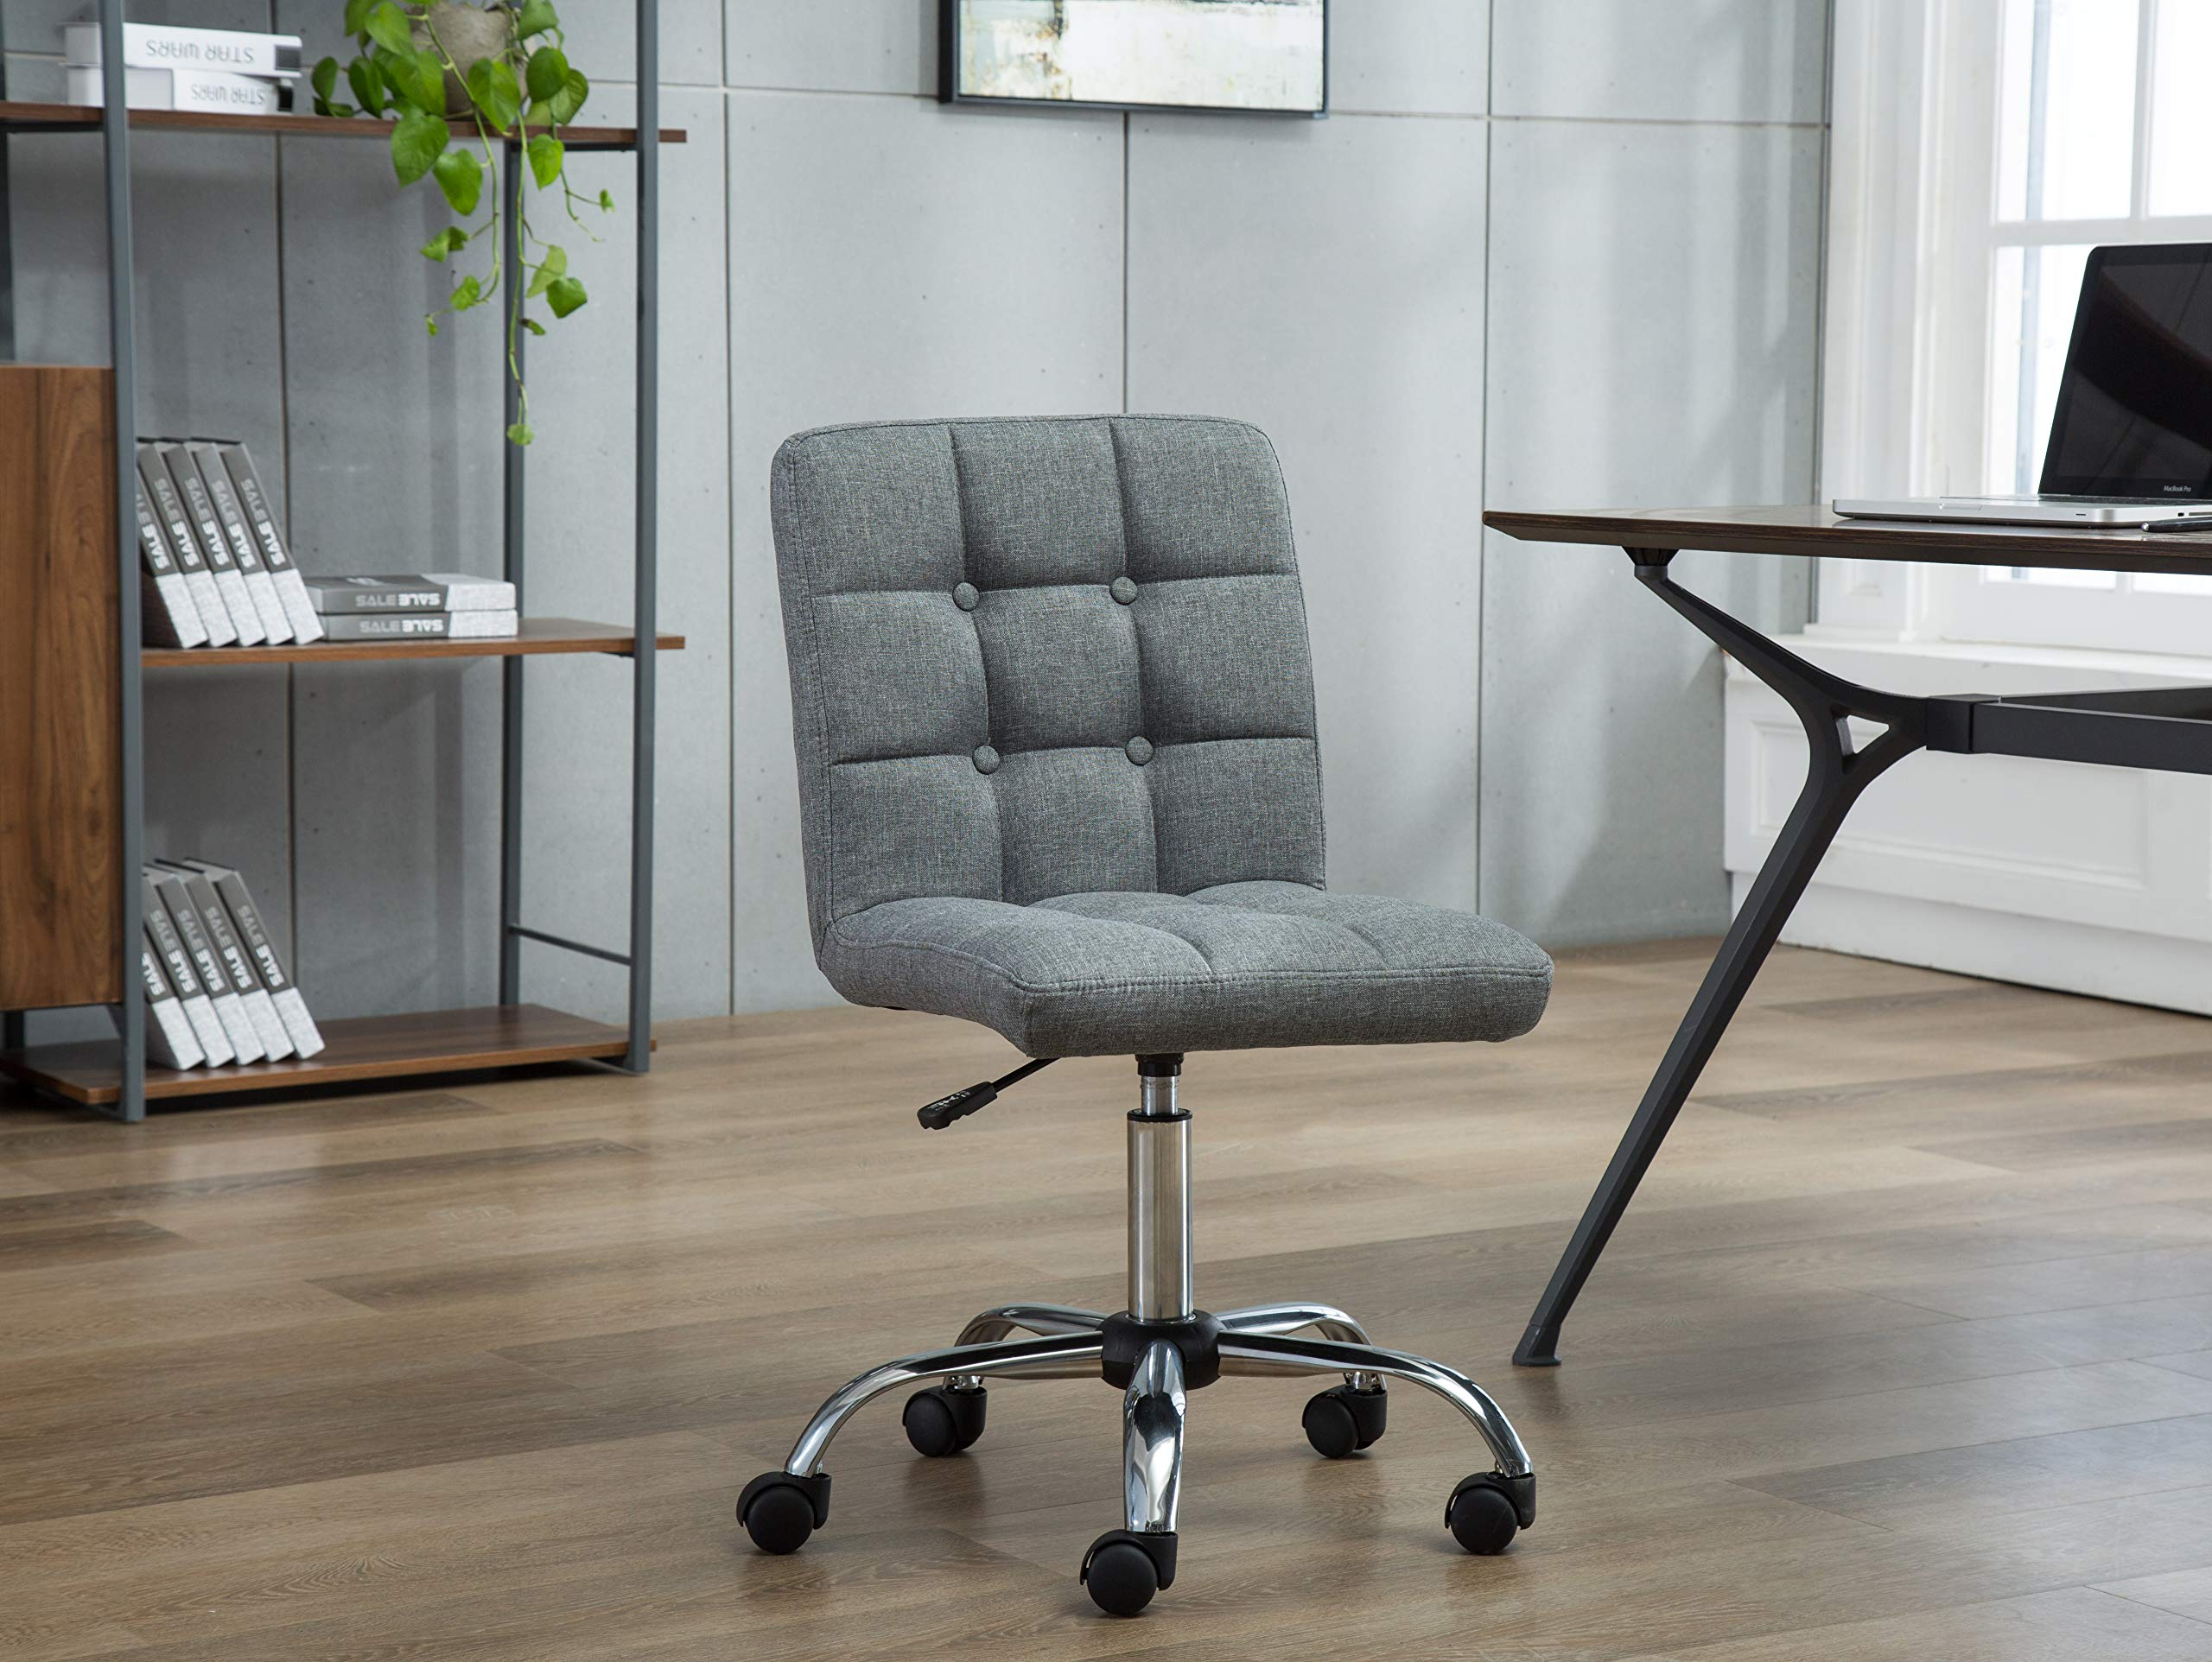 Porthos Home EFC001A Gry Parker Office Chair, One Size, Grey